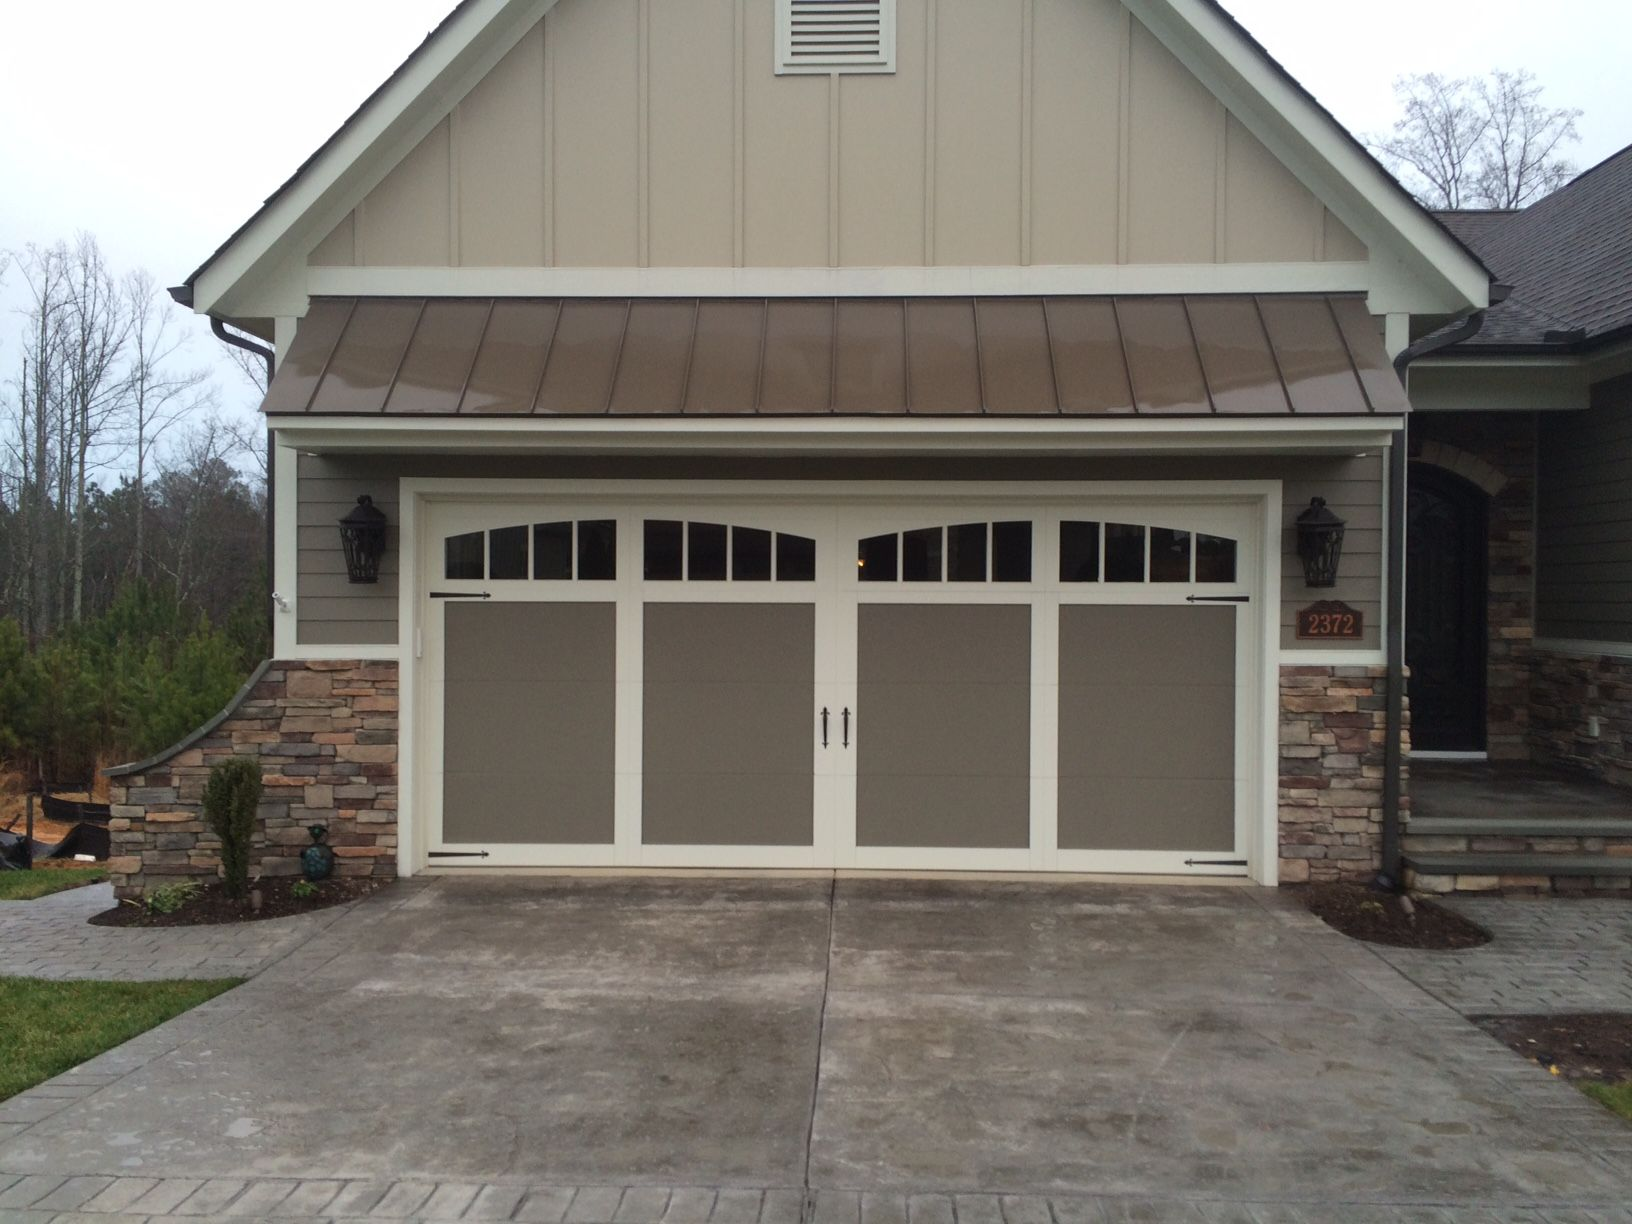 18x8 Model 5331a Double Steel Insulated Carriage Style Garage Door